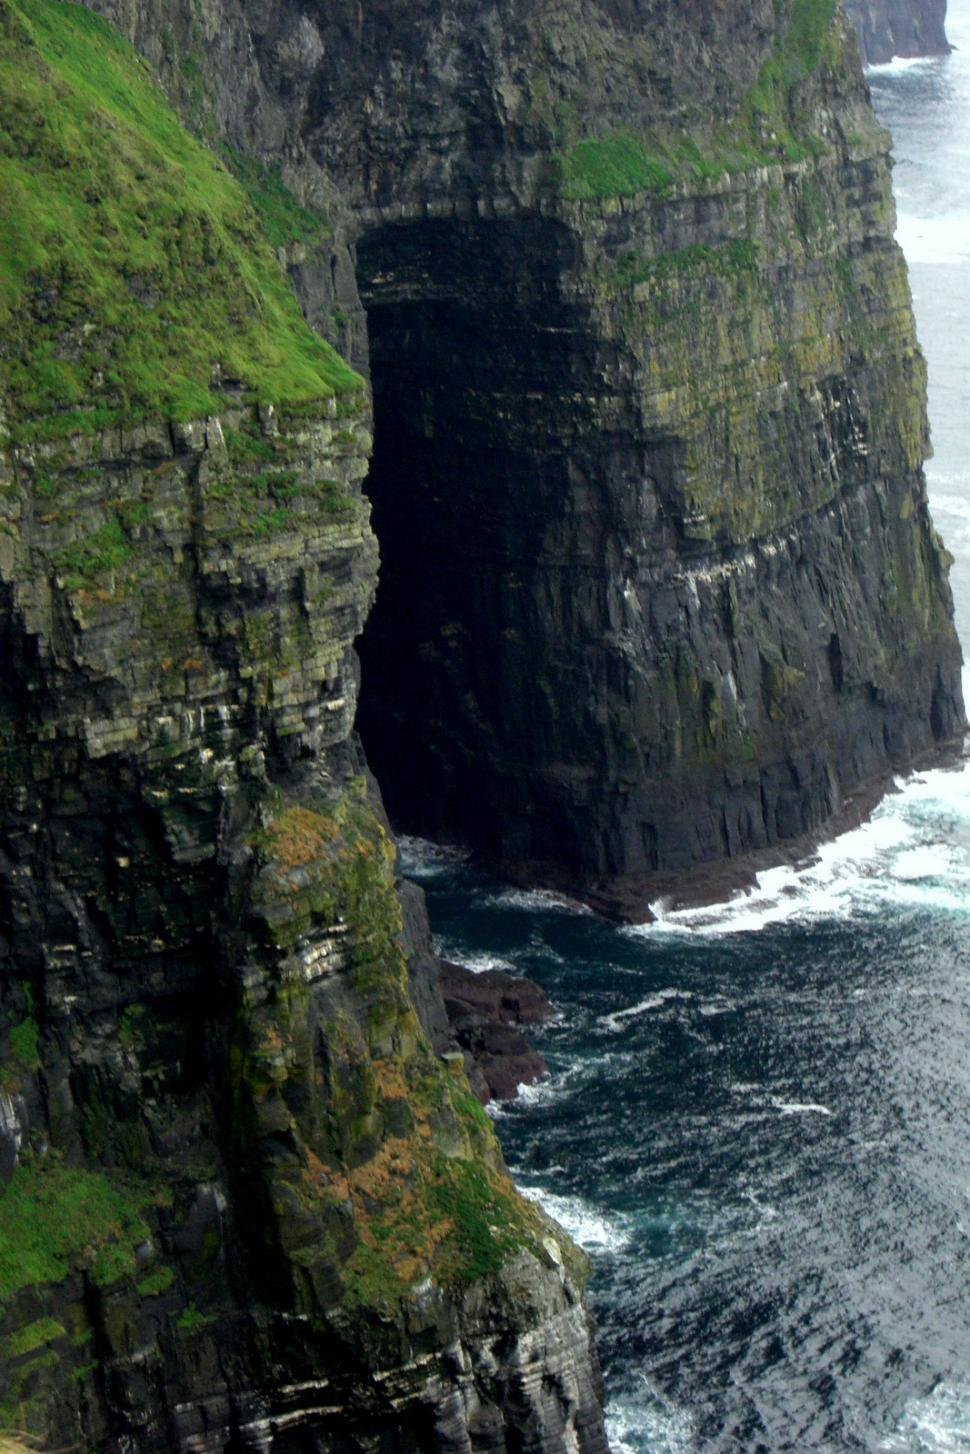 Download Free Stock Photo of A Cave at the Cliffs of Moher